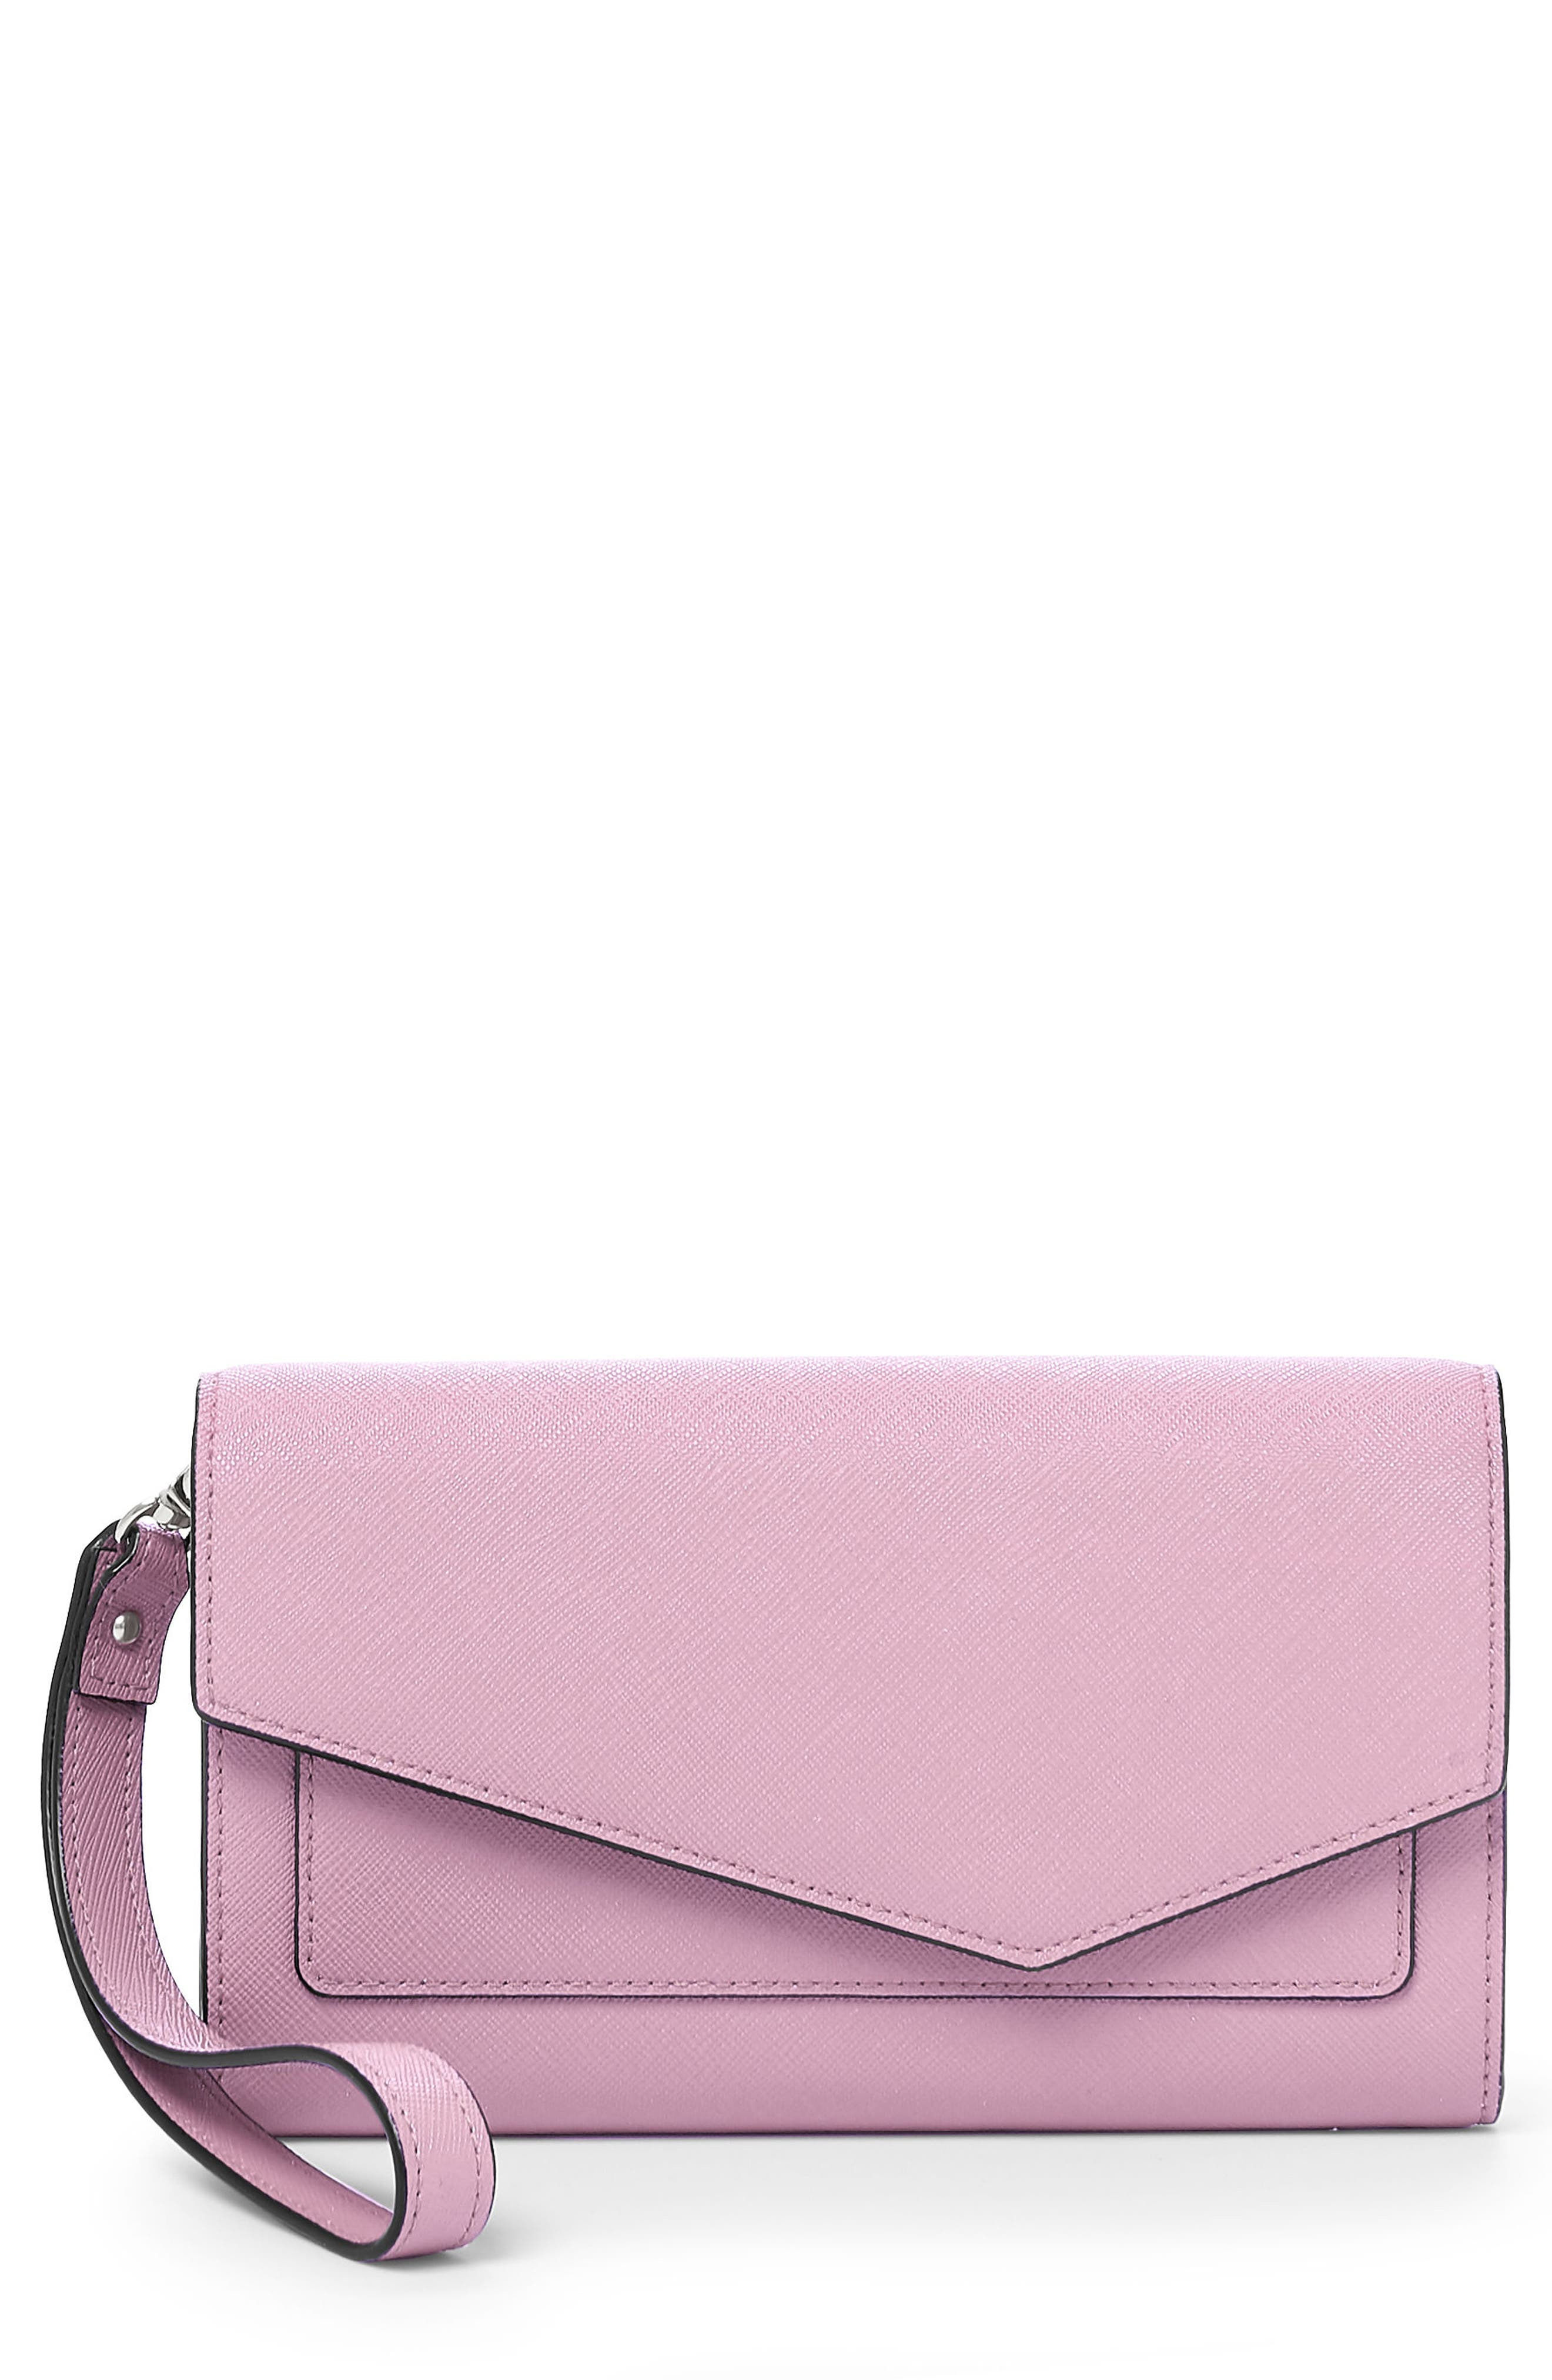 Botkier Cobble Hill Calfskin Leather Wallet